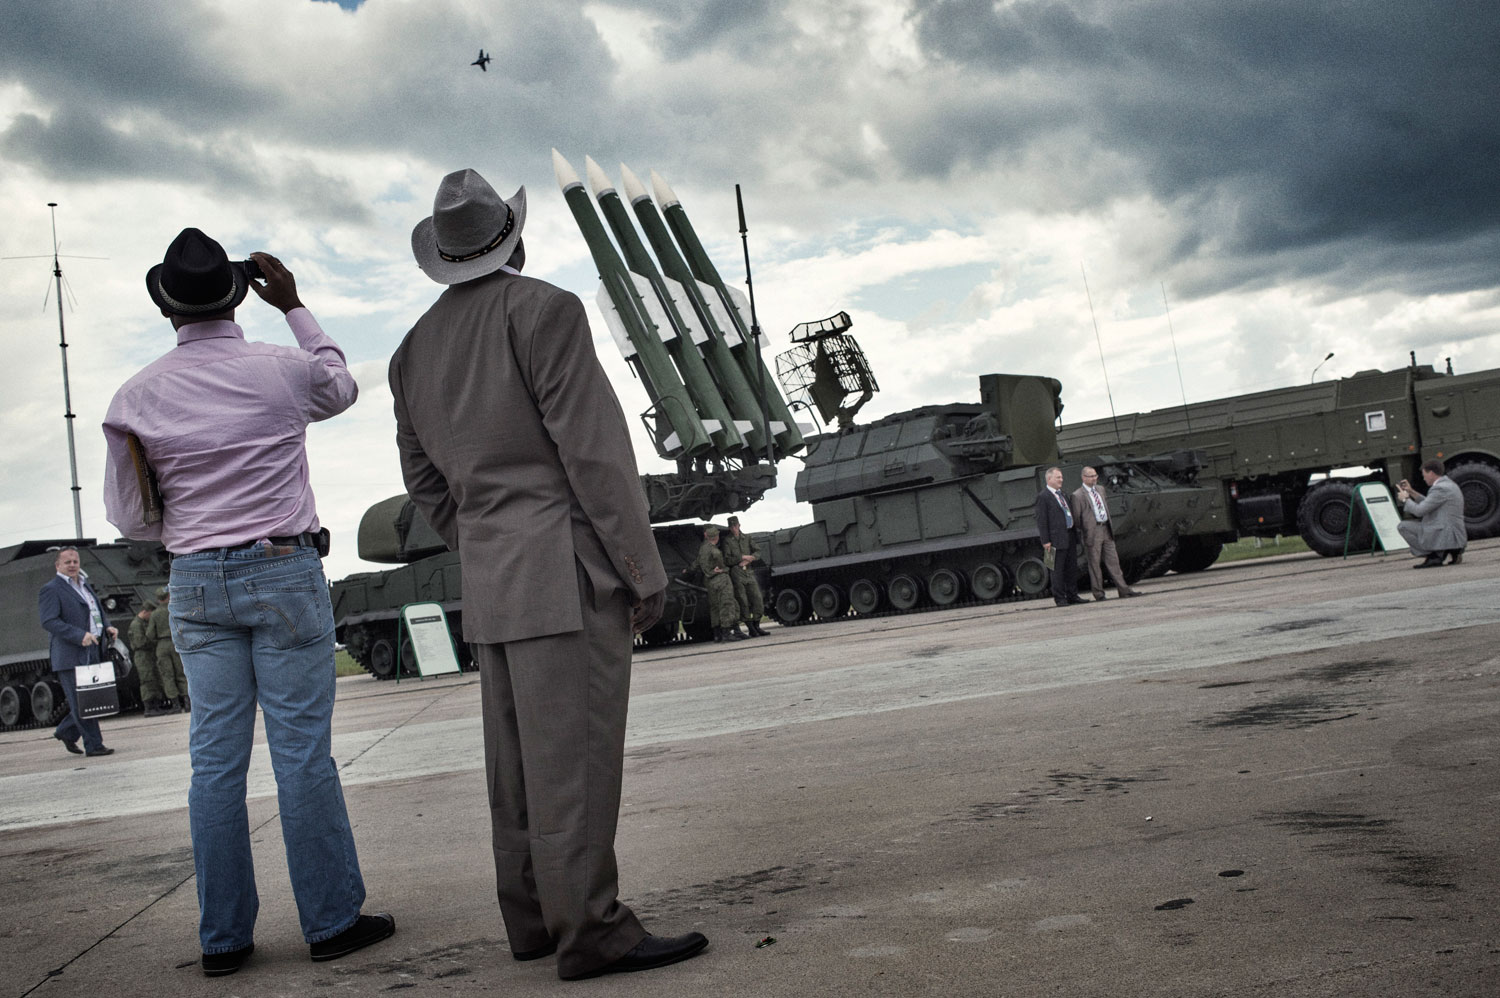 African delegates to the arms bazaar study the SA-17 Grizzly anti-aircraft missiles and other Russian heavy artillery.